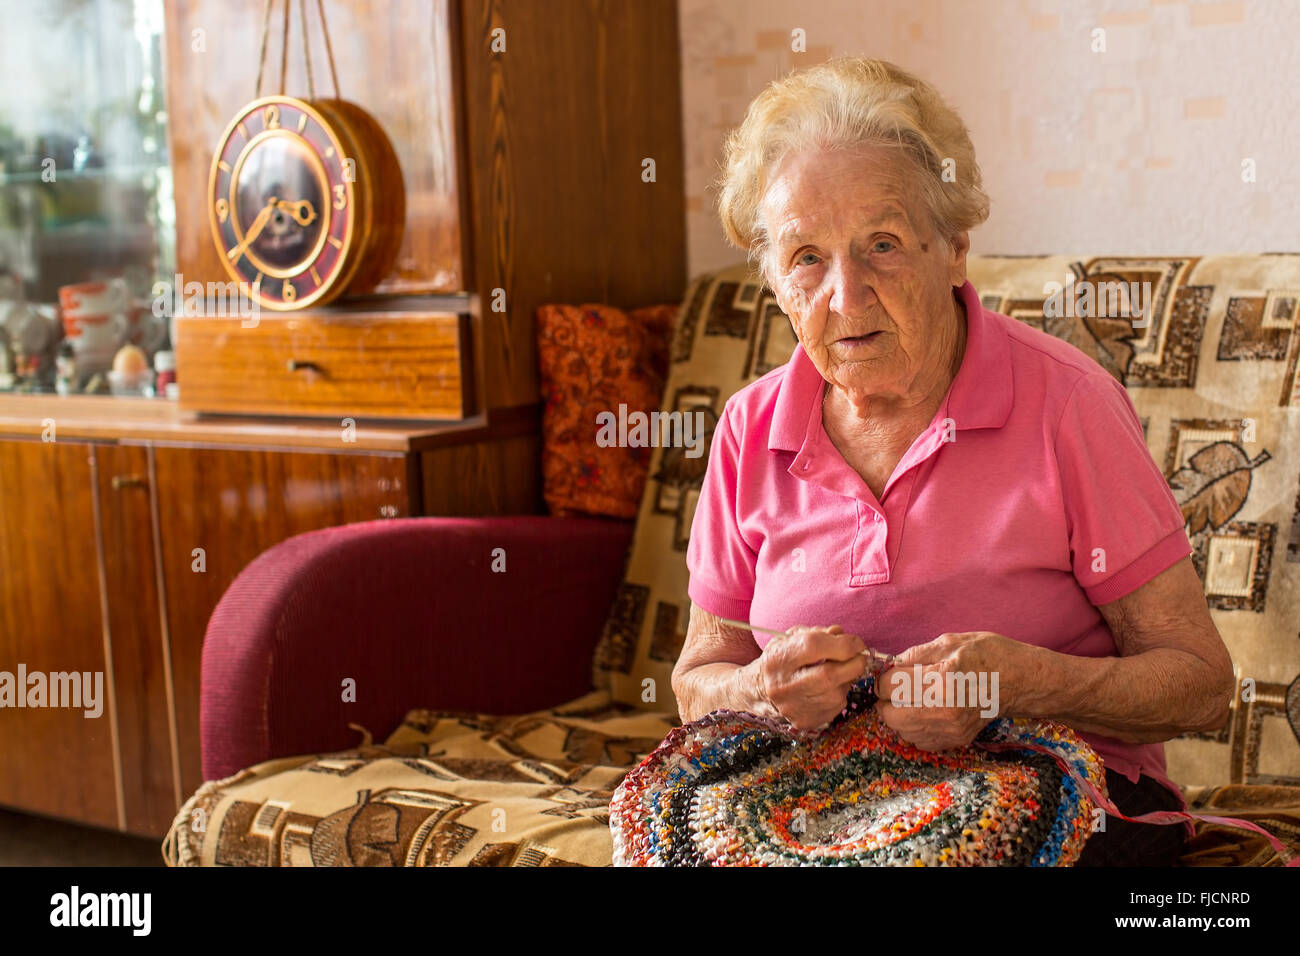 An elderly woman sitting in her room and knitting rug. - Stock Image